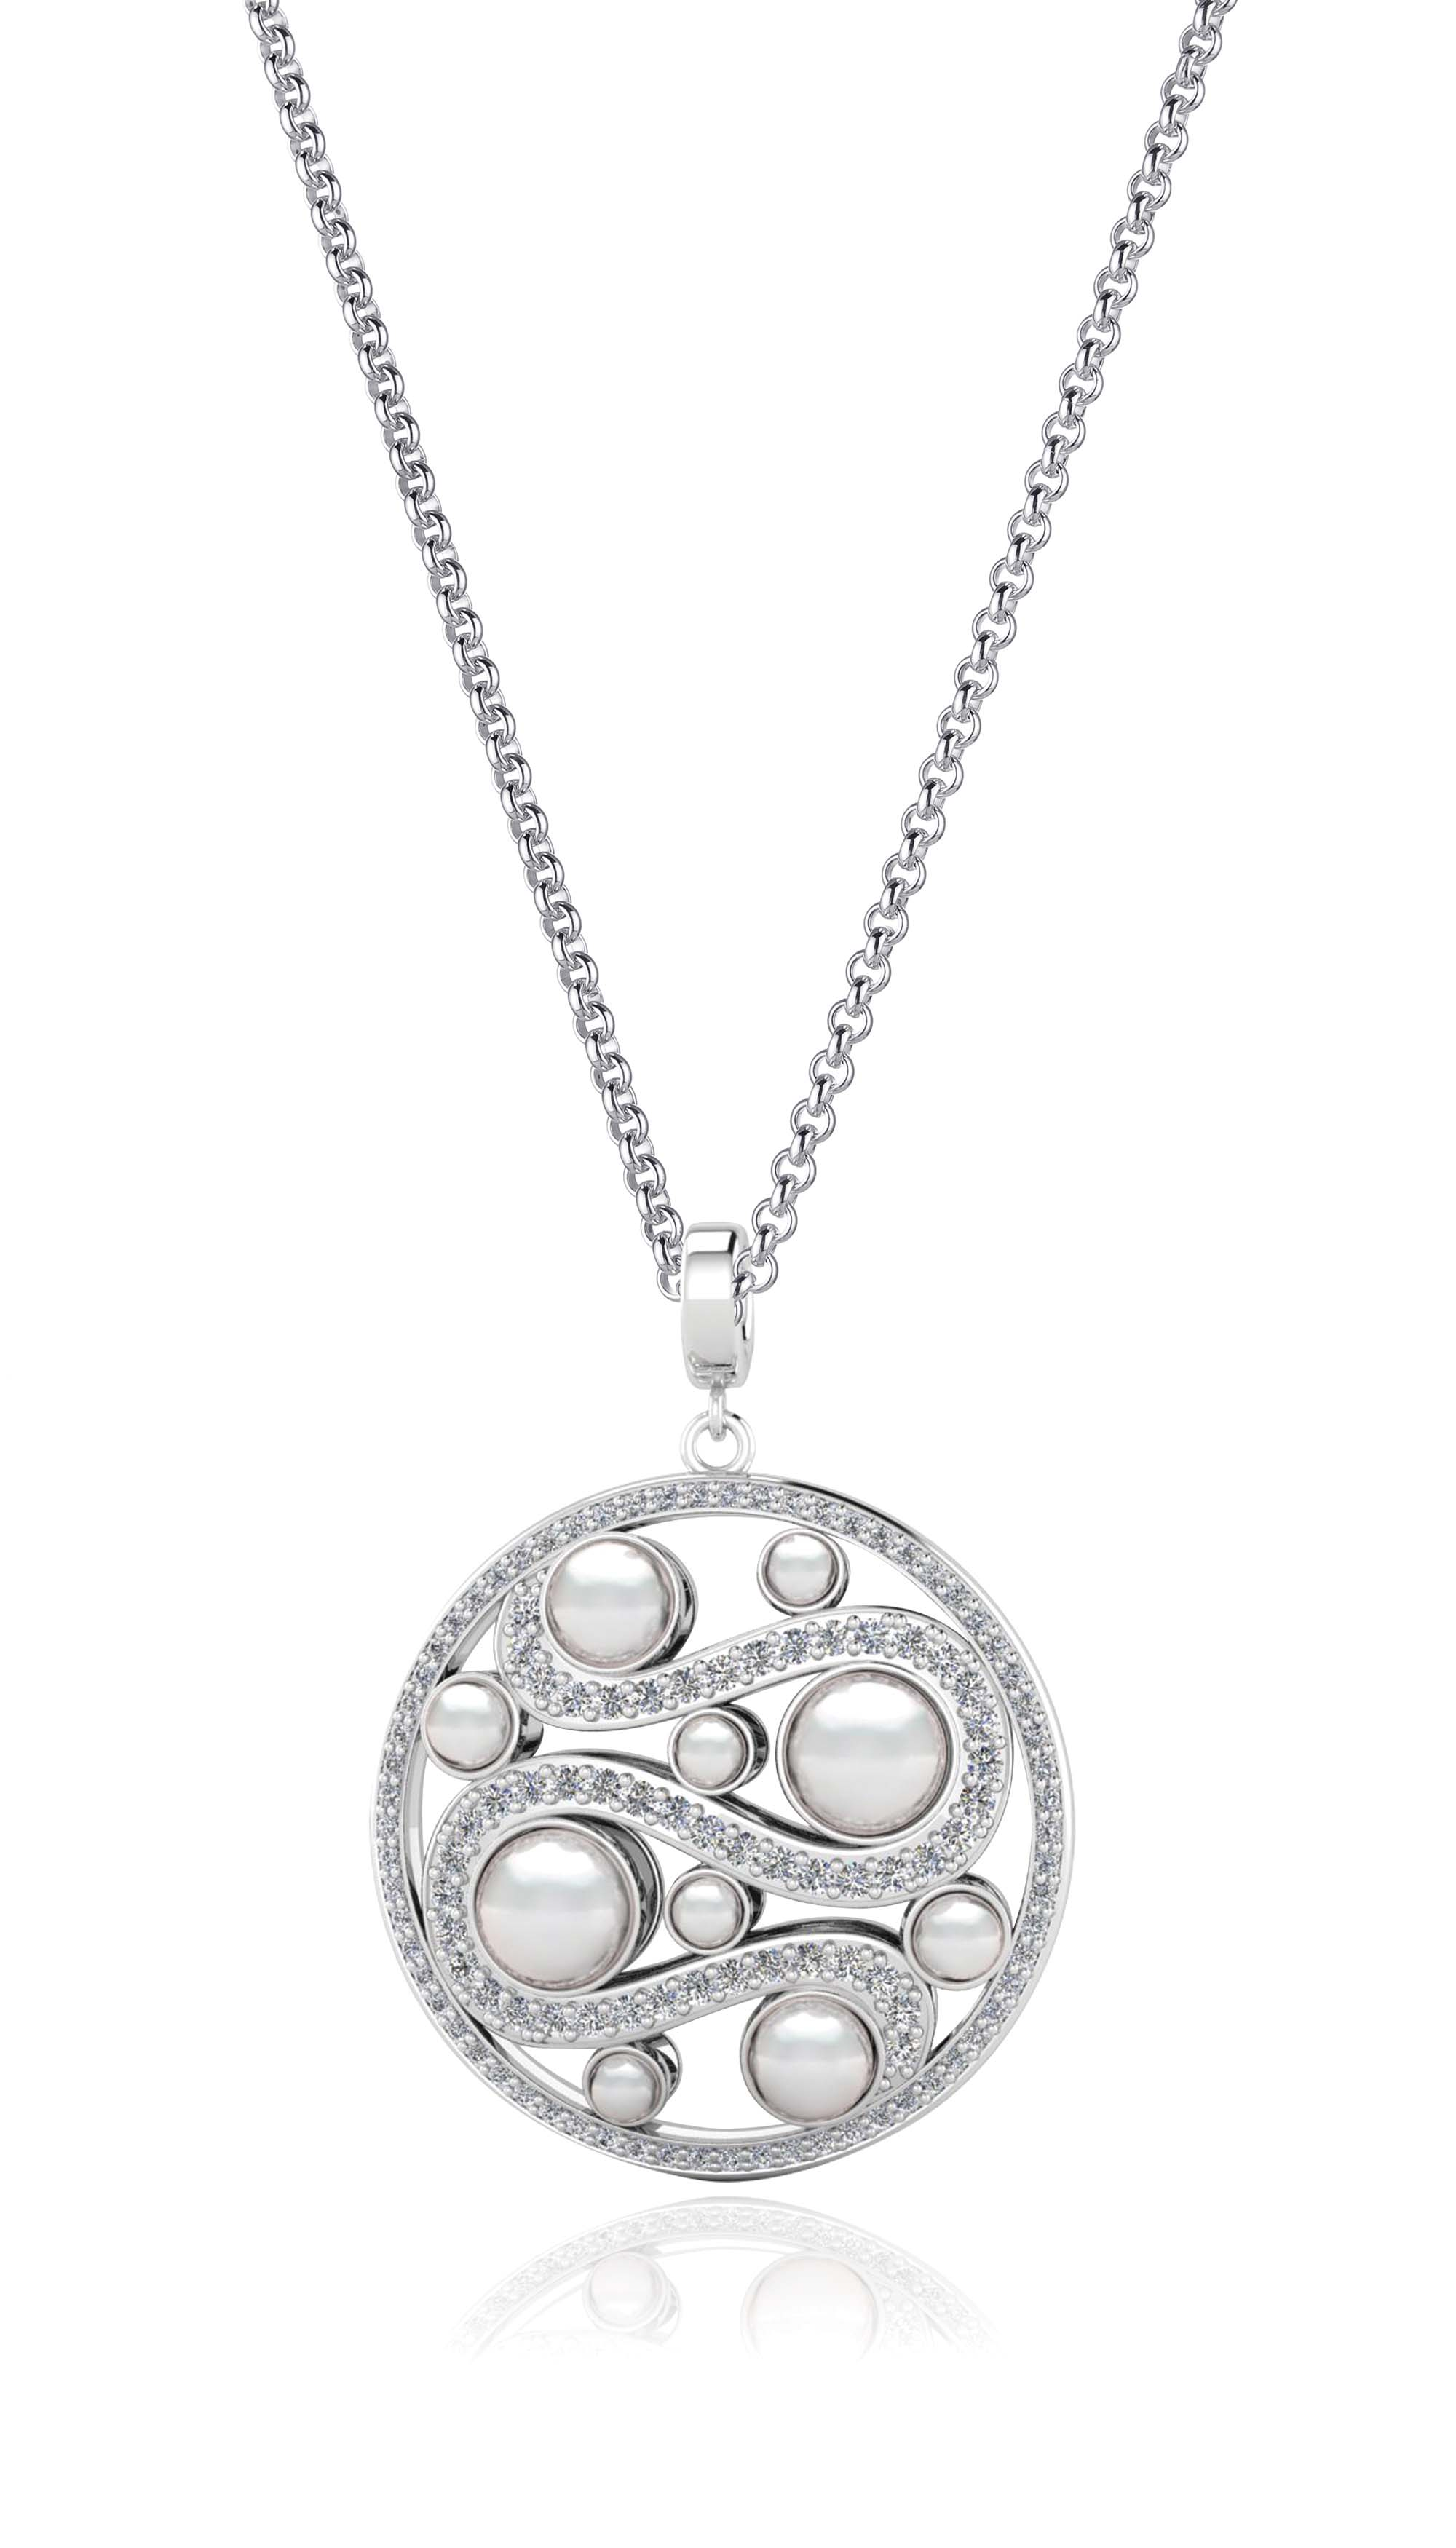 Kagi Steel Me Petite Necklace 47cm $129 with Mystic Pearl Pendant (Light Side) $249 www.kagi.net